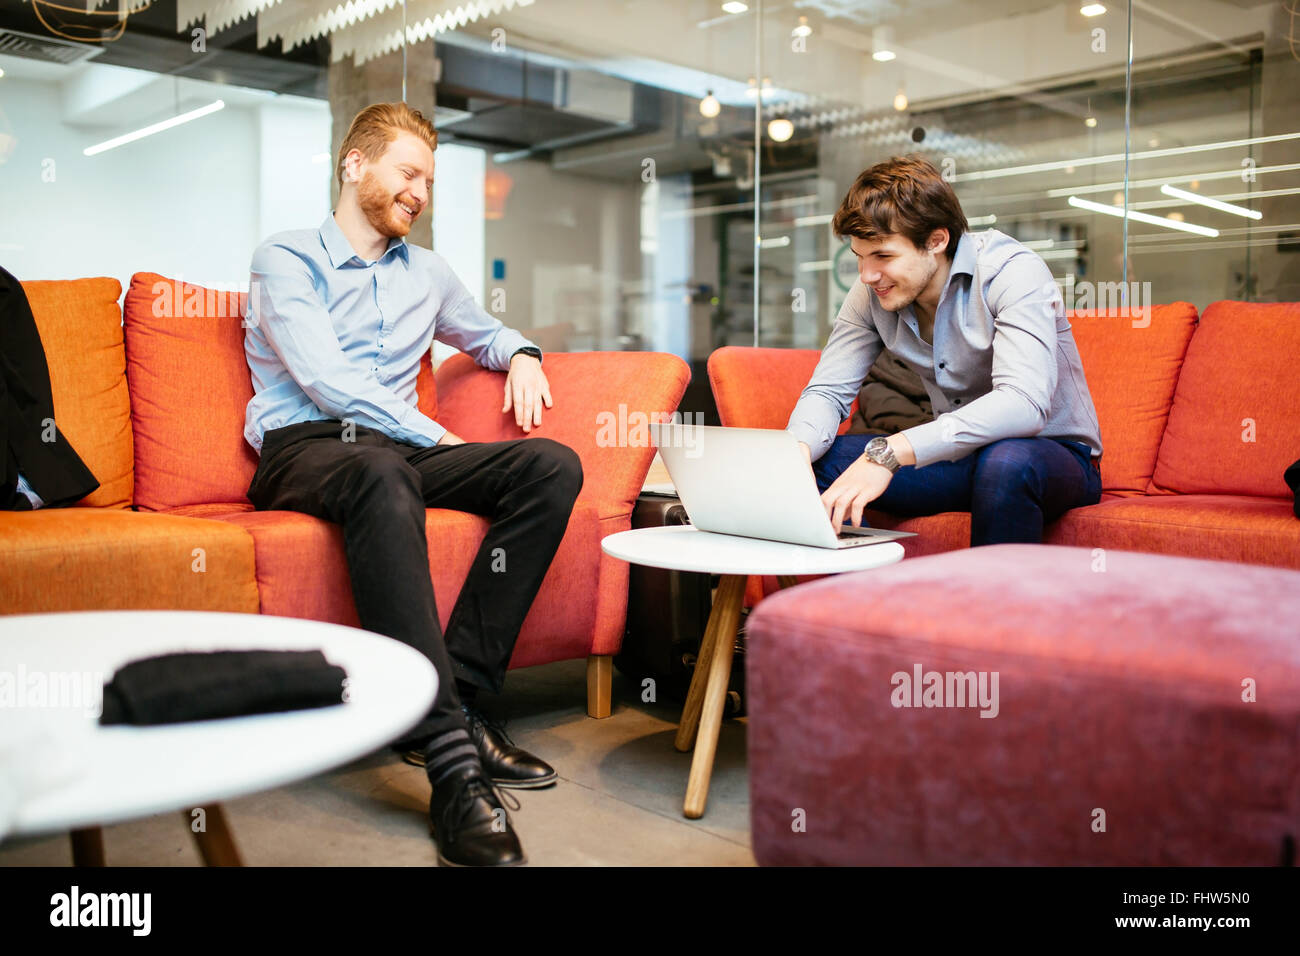 Business colleagues talking during break and working - Stock Image